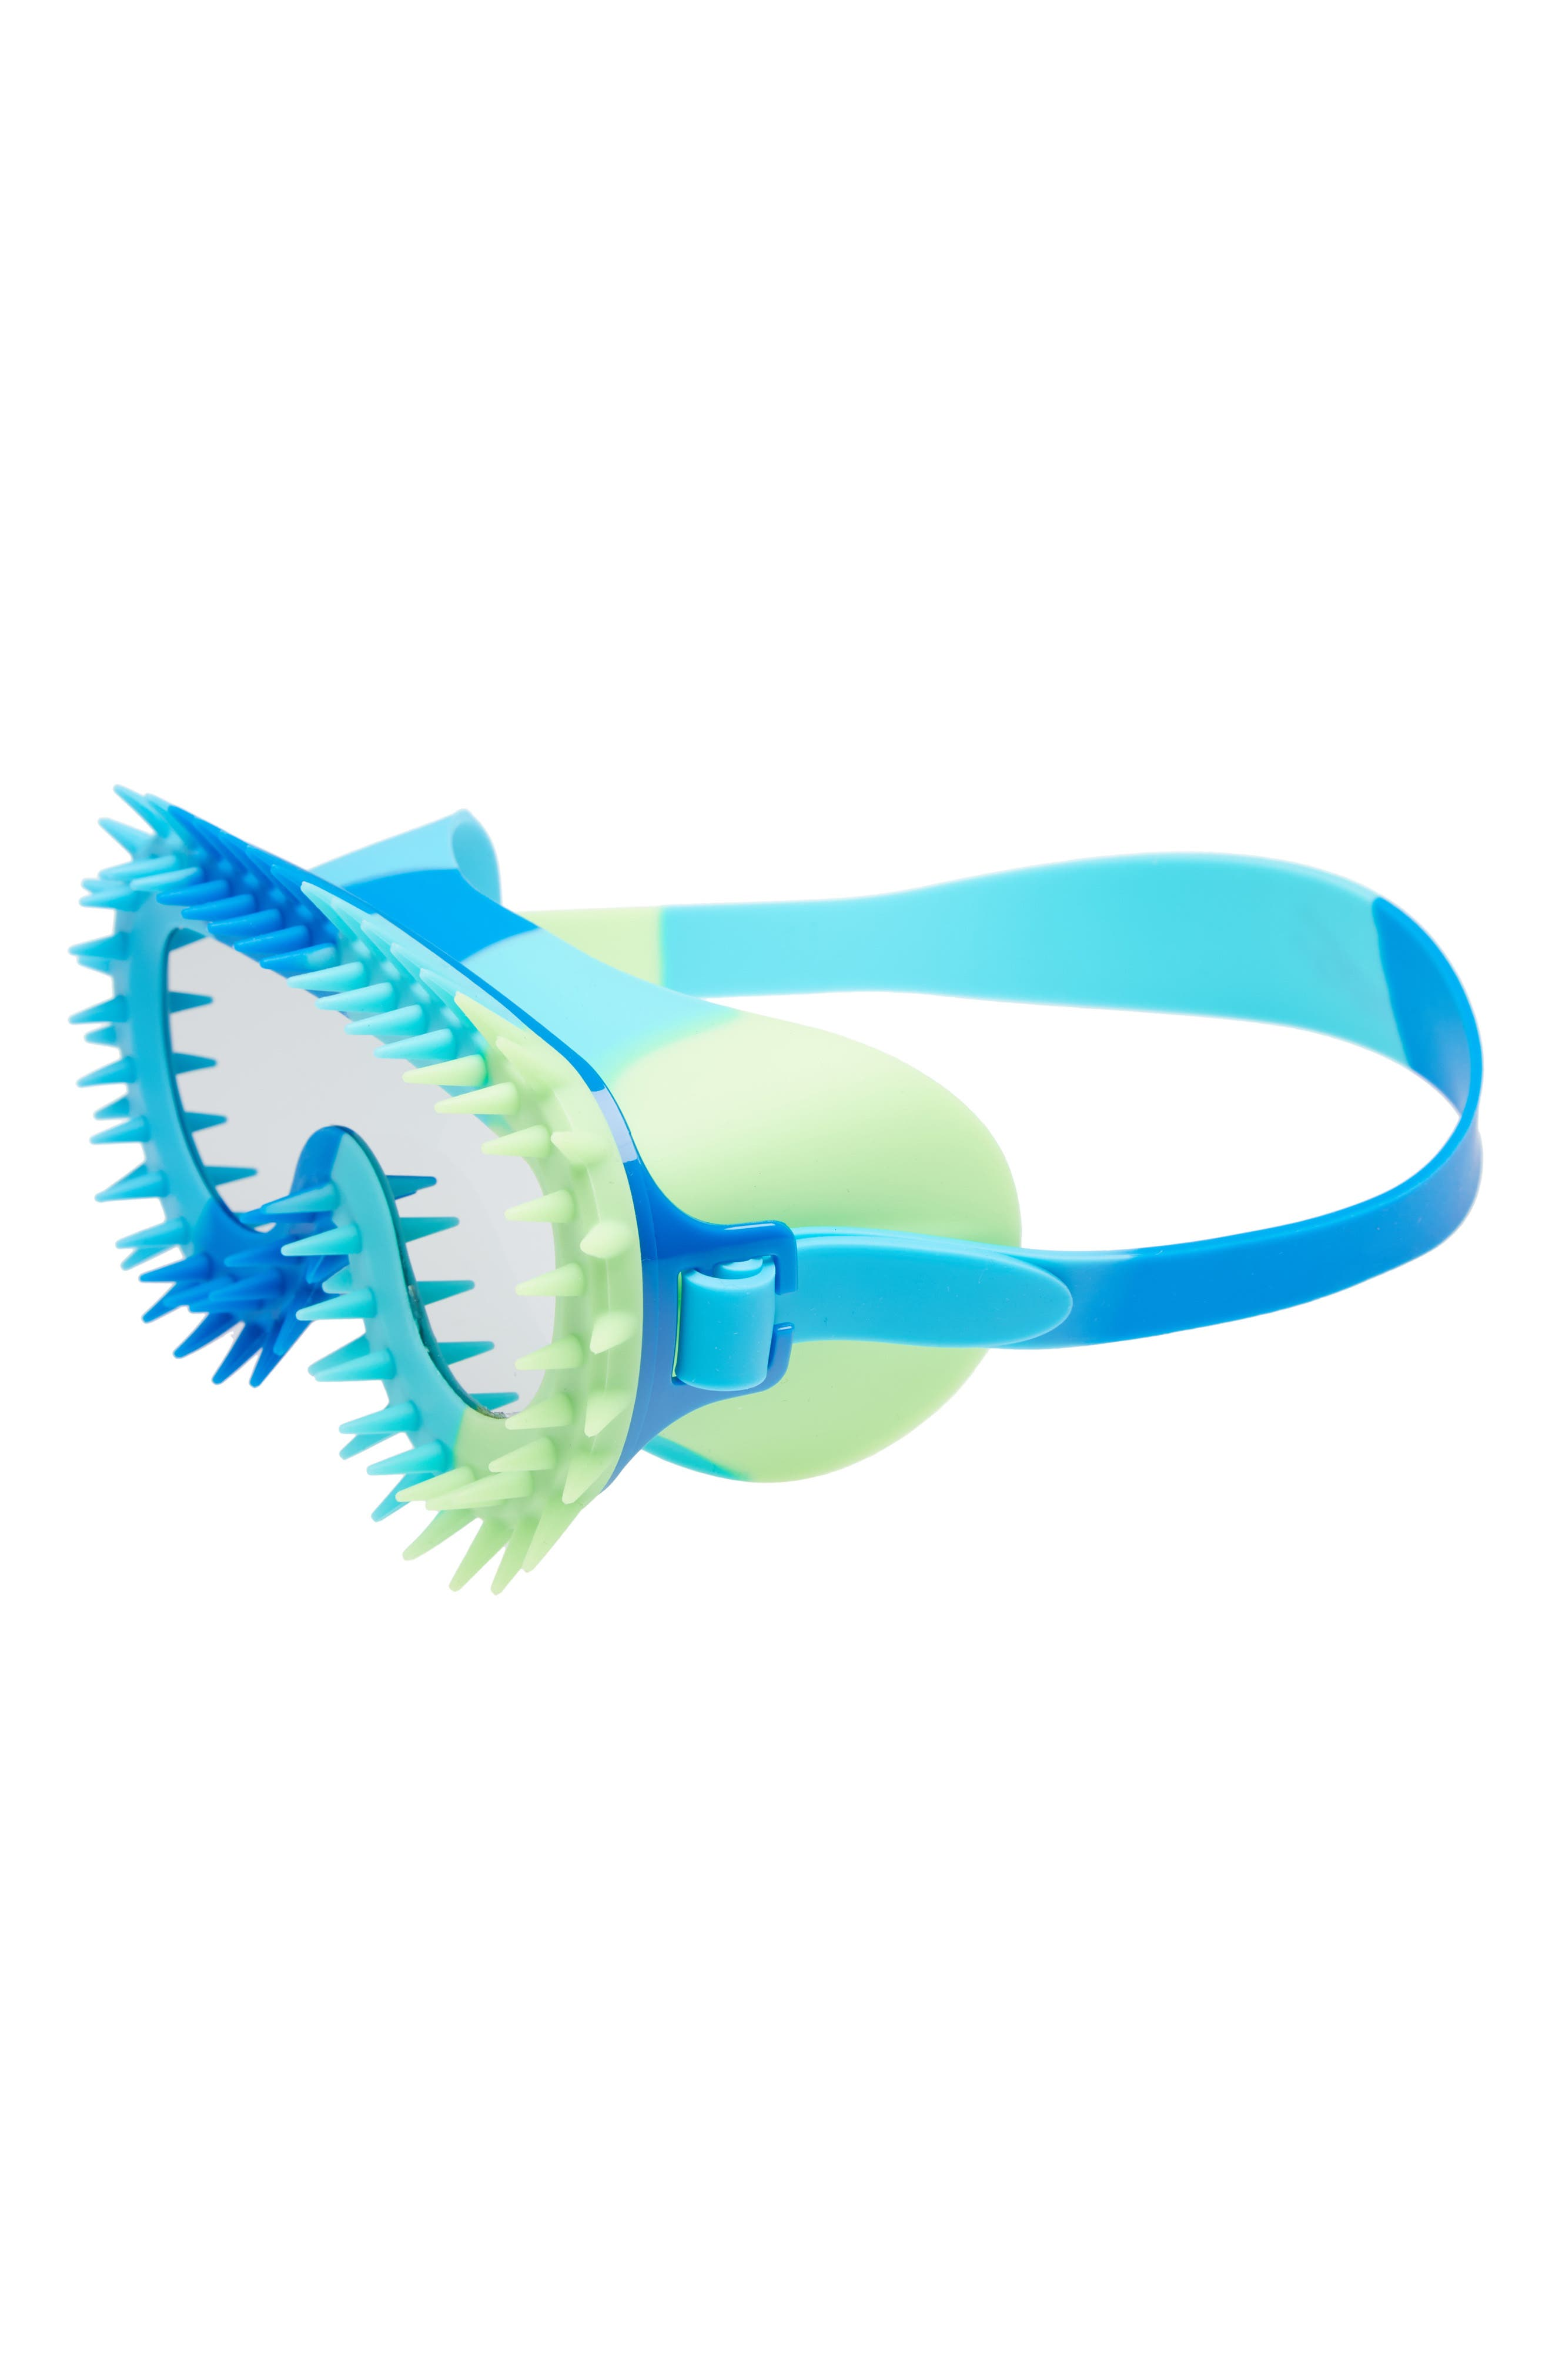 Monster Swim Mask,                             Main thumbnail 1, color,                             Blue/ Green